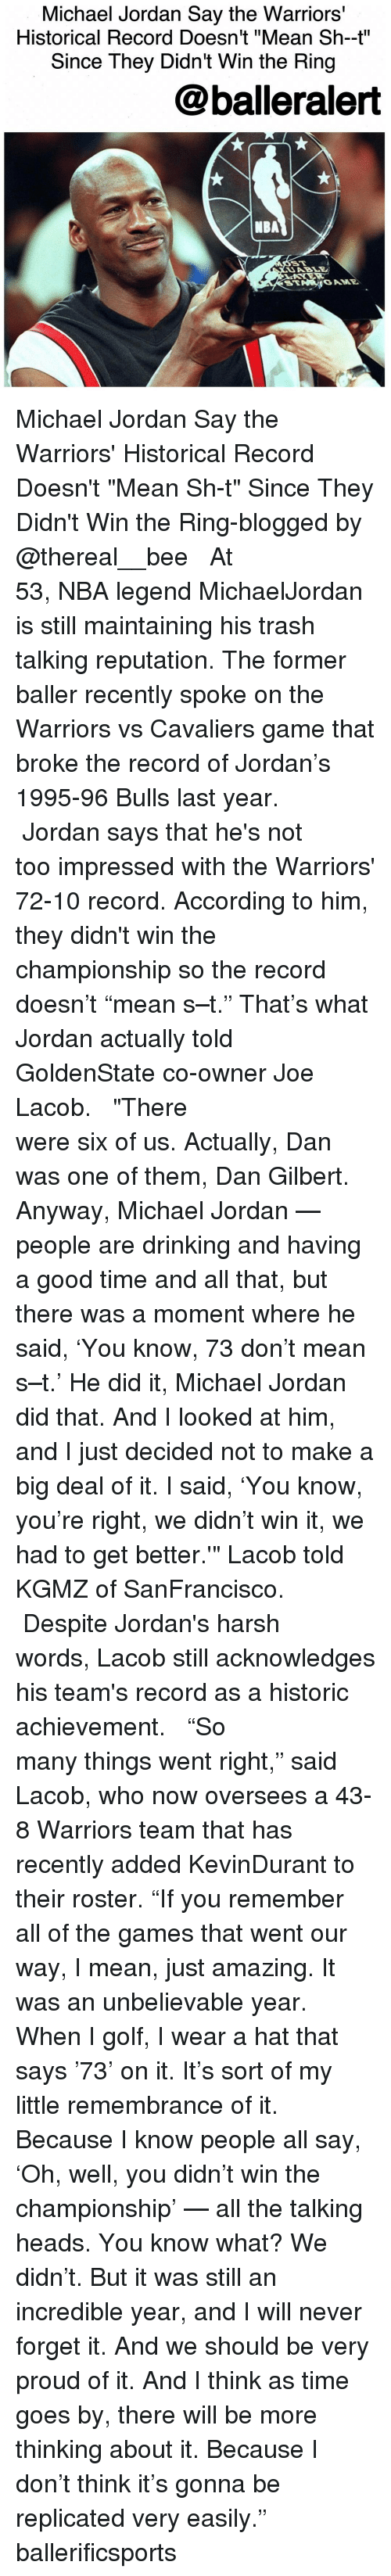 """trash talking: Michael Jordan Say the Warriors'  Historical Record Doesn't """"Mean Sh-t""""  Since They Didn't Win the Ring  balleralert  NBA Michael Jordan Say the Warriors' Historical Record Doesn't """"Mean Sh-t"""" Since They Didn't Win the Ring-blogged by @thereal__bee ⠀⠀⠀⠀⠀⠀⠀⠀⠀ ⠀⠀⠀⠀⠀⠀⠀⠀⠀ At 53, NBA legend MichaelJordan is still maintaining his trash talking reputation. The former baller recently spoke on the Warriors vs Cavaliers game that broke the record of Jordan's 1995-96 Bulls last year. ⠀⠀⠀⠀⠀⠀⠀⠀⠀ ⠀⠀⠀⠀⠀⠀⠀⠀⠀ Jordan says that he's not too impressed with the Warriors' 72-10 record. According to him, they didn't win the championship so the record doesn't """"mean s–t."""" That's what Jordan actually told GoldenState co-owner Joe Lacob. ⠀⠀⠀⠀⠀⠀⠀⠀⠀ ⠀⠀⠀⠀⠀⠀⠀⠀⠀ """"There were six of us. Actually, Dan was one of them, Dan Gilbert. Anyway, Michael Jordan — people are drinking and having a good time and all that, but there was a moment where he said, 'You know, 73 don't mean s–t.' He did it, Michael Jordan did that. And I looked at him, and I just decided not to make a big deal of it. I said, 'You know, you're right, we didn't win it, we had to get better.'"""" Lacob told KGMZ of SanFrancisco. ⠀⠀⠀⠀⠀⠀⠀⠀⠀ ⠀⠀⠀⠀⠀⠀⠀⠀⠀ Despite Jordan's harsh words, Lacob still acknowledges his team's record as a historic achievement. ⠀⠀⠀⠀⠀⠀⠀⠀⠀ ⠀⠀⠀⠀⠀⠀⠀⠀⠀ """"So many things went right,"""" said Lacob, who now oversees a 43-8 Warriors team that has recently added KevinDurant to their roster. """"If you remember all of the games that went our way, I mean, just amazing. It was an unbelievable year. When I golf, I wear a hat that says '73' on it. It's sort of my little remembrance of it. Because I know people all say, 'Oh, well, you didn't win the championship' — all the talking heads. You know what? We didn't. But it was still an incredible year, and I will never forget it. And we should be very proud of it. And I think as time goes by, there will be more thinking about it. Because I don't think it's gonna be replicated very e"""